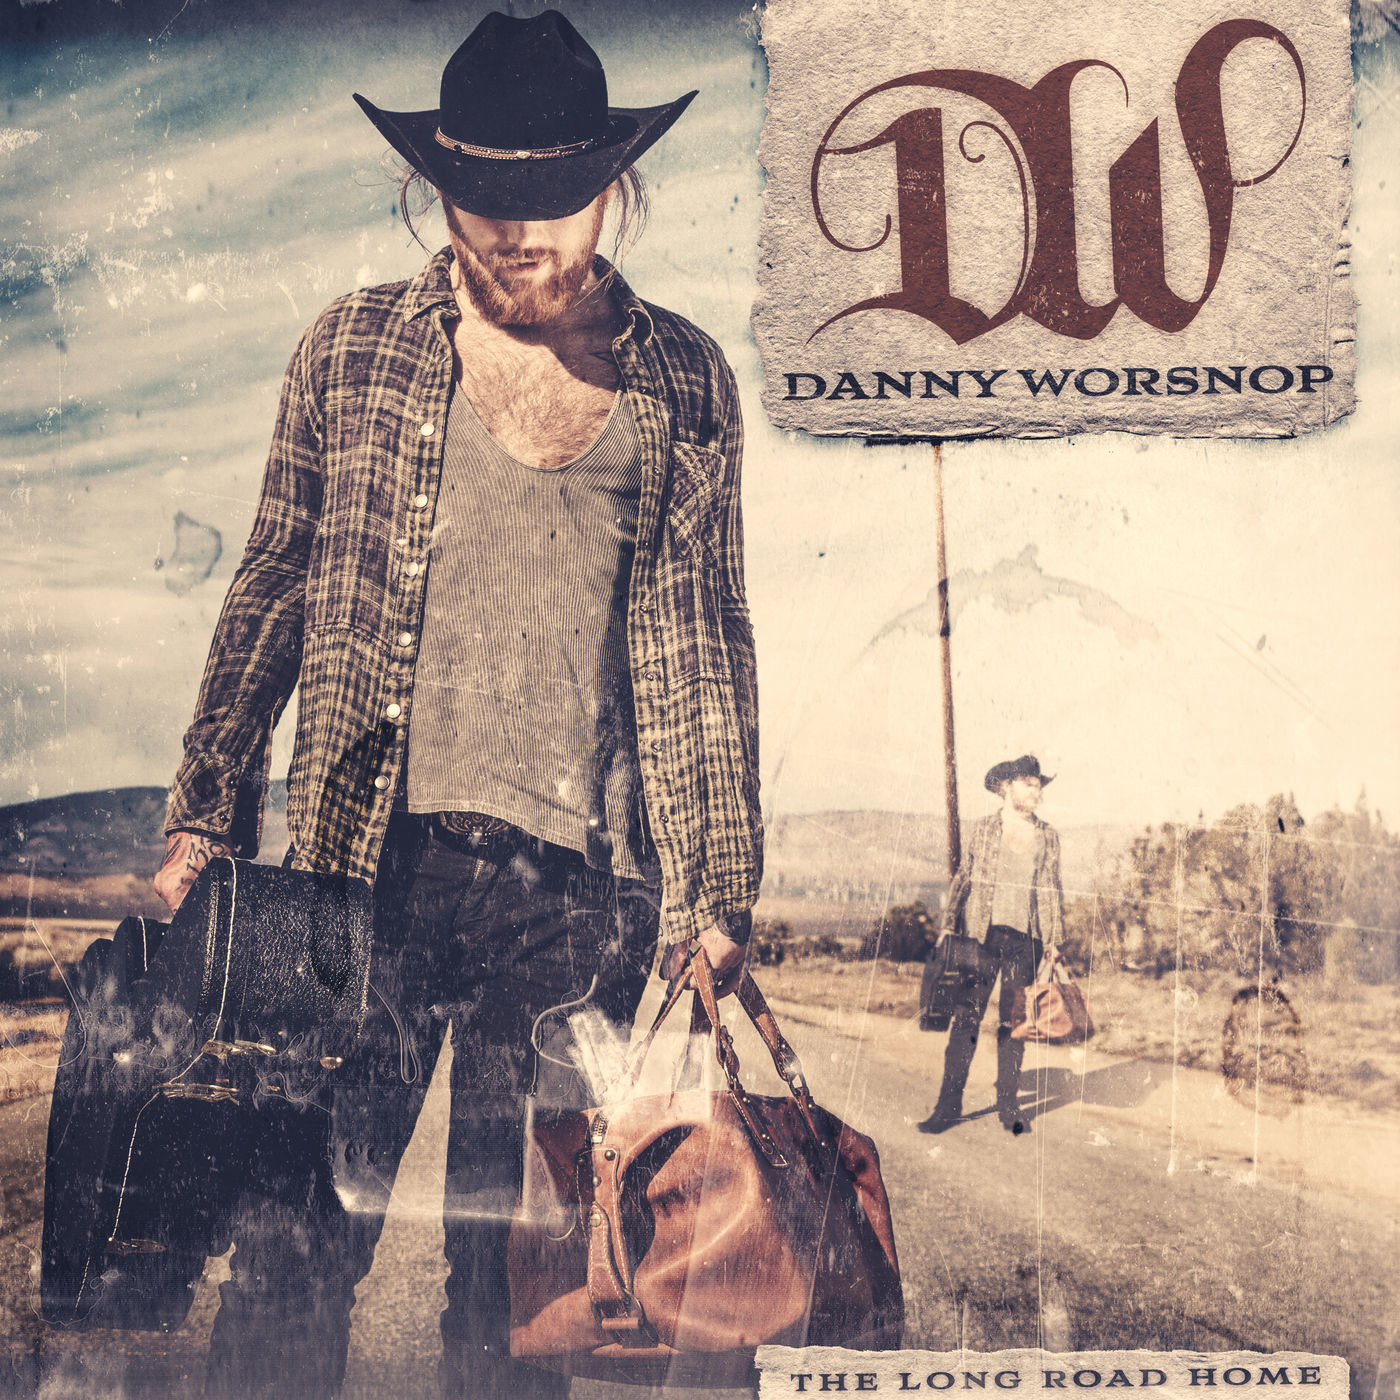 Danny Worsnop - Mexico [single] (2016)